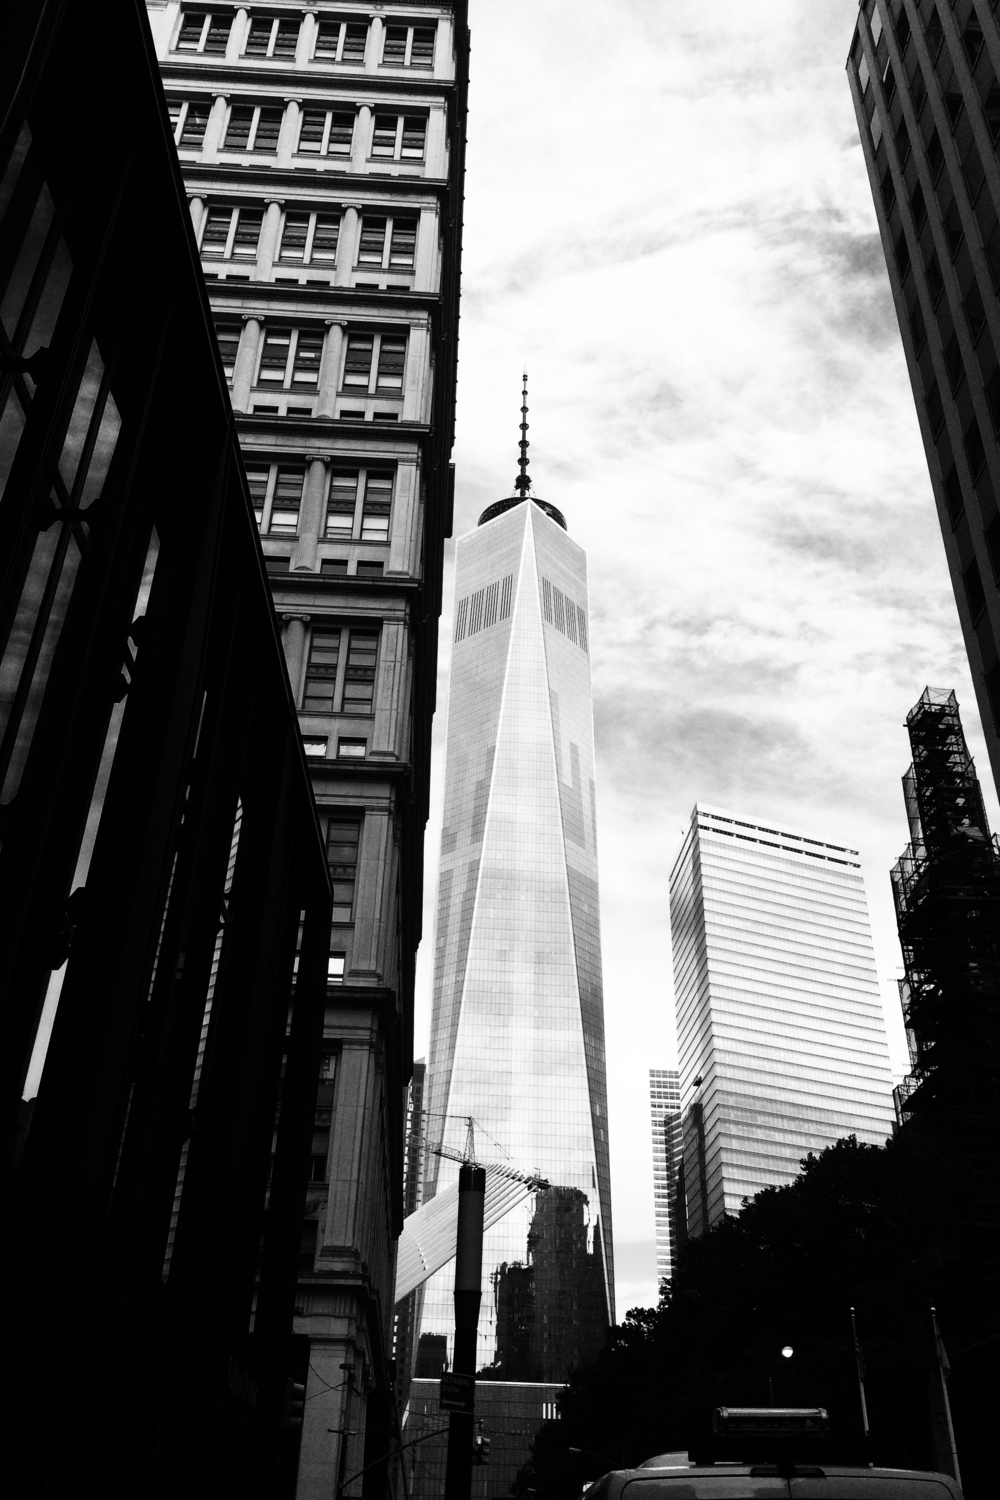 The Freedom Tower, free to photograph from many angles